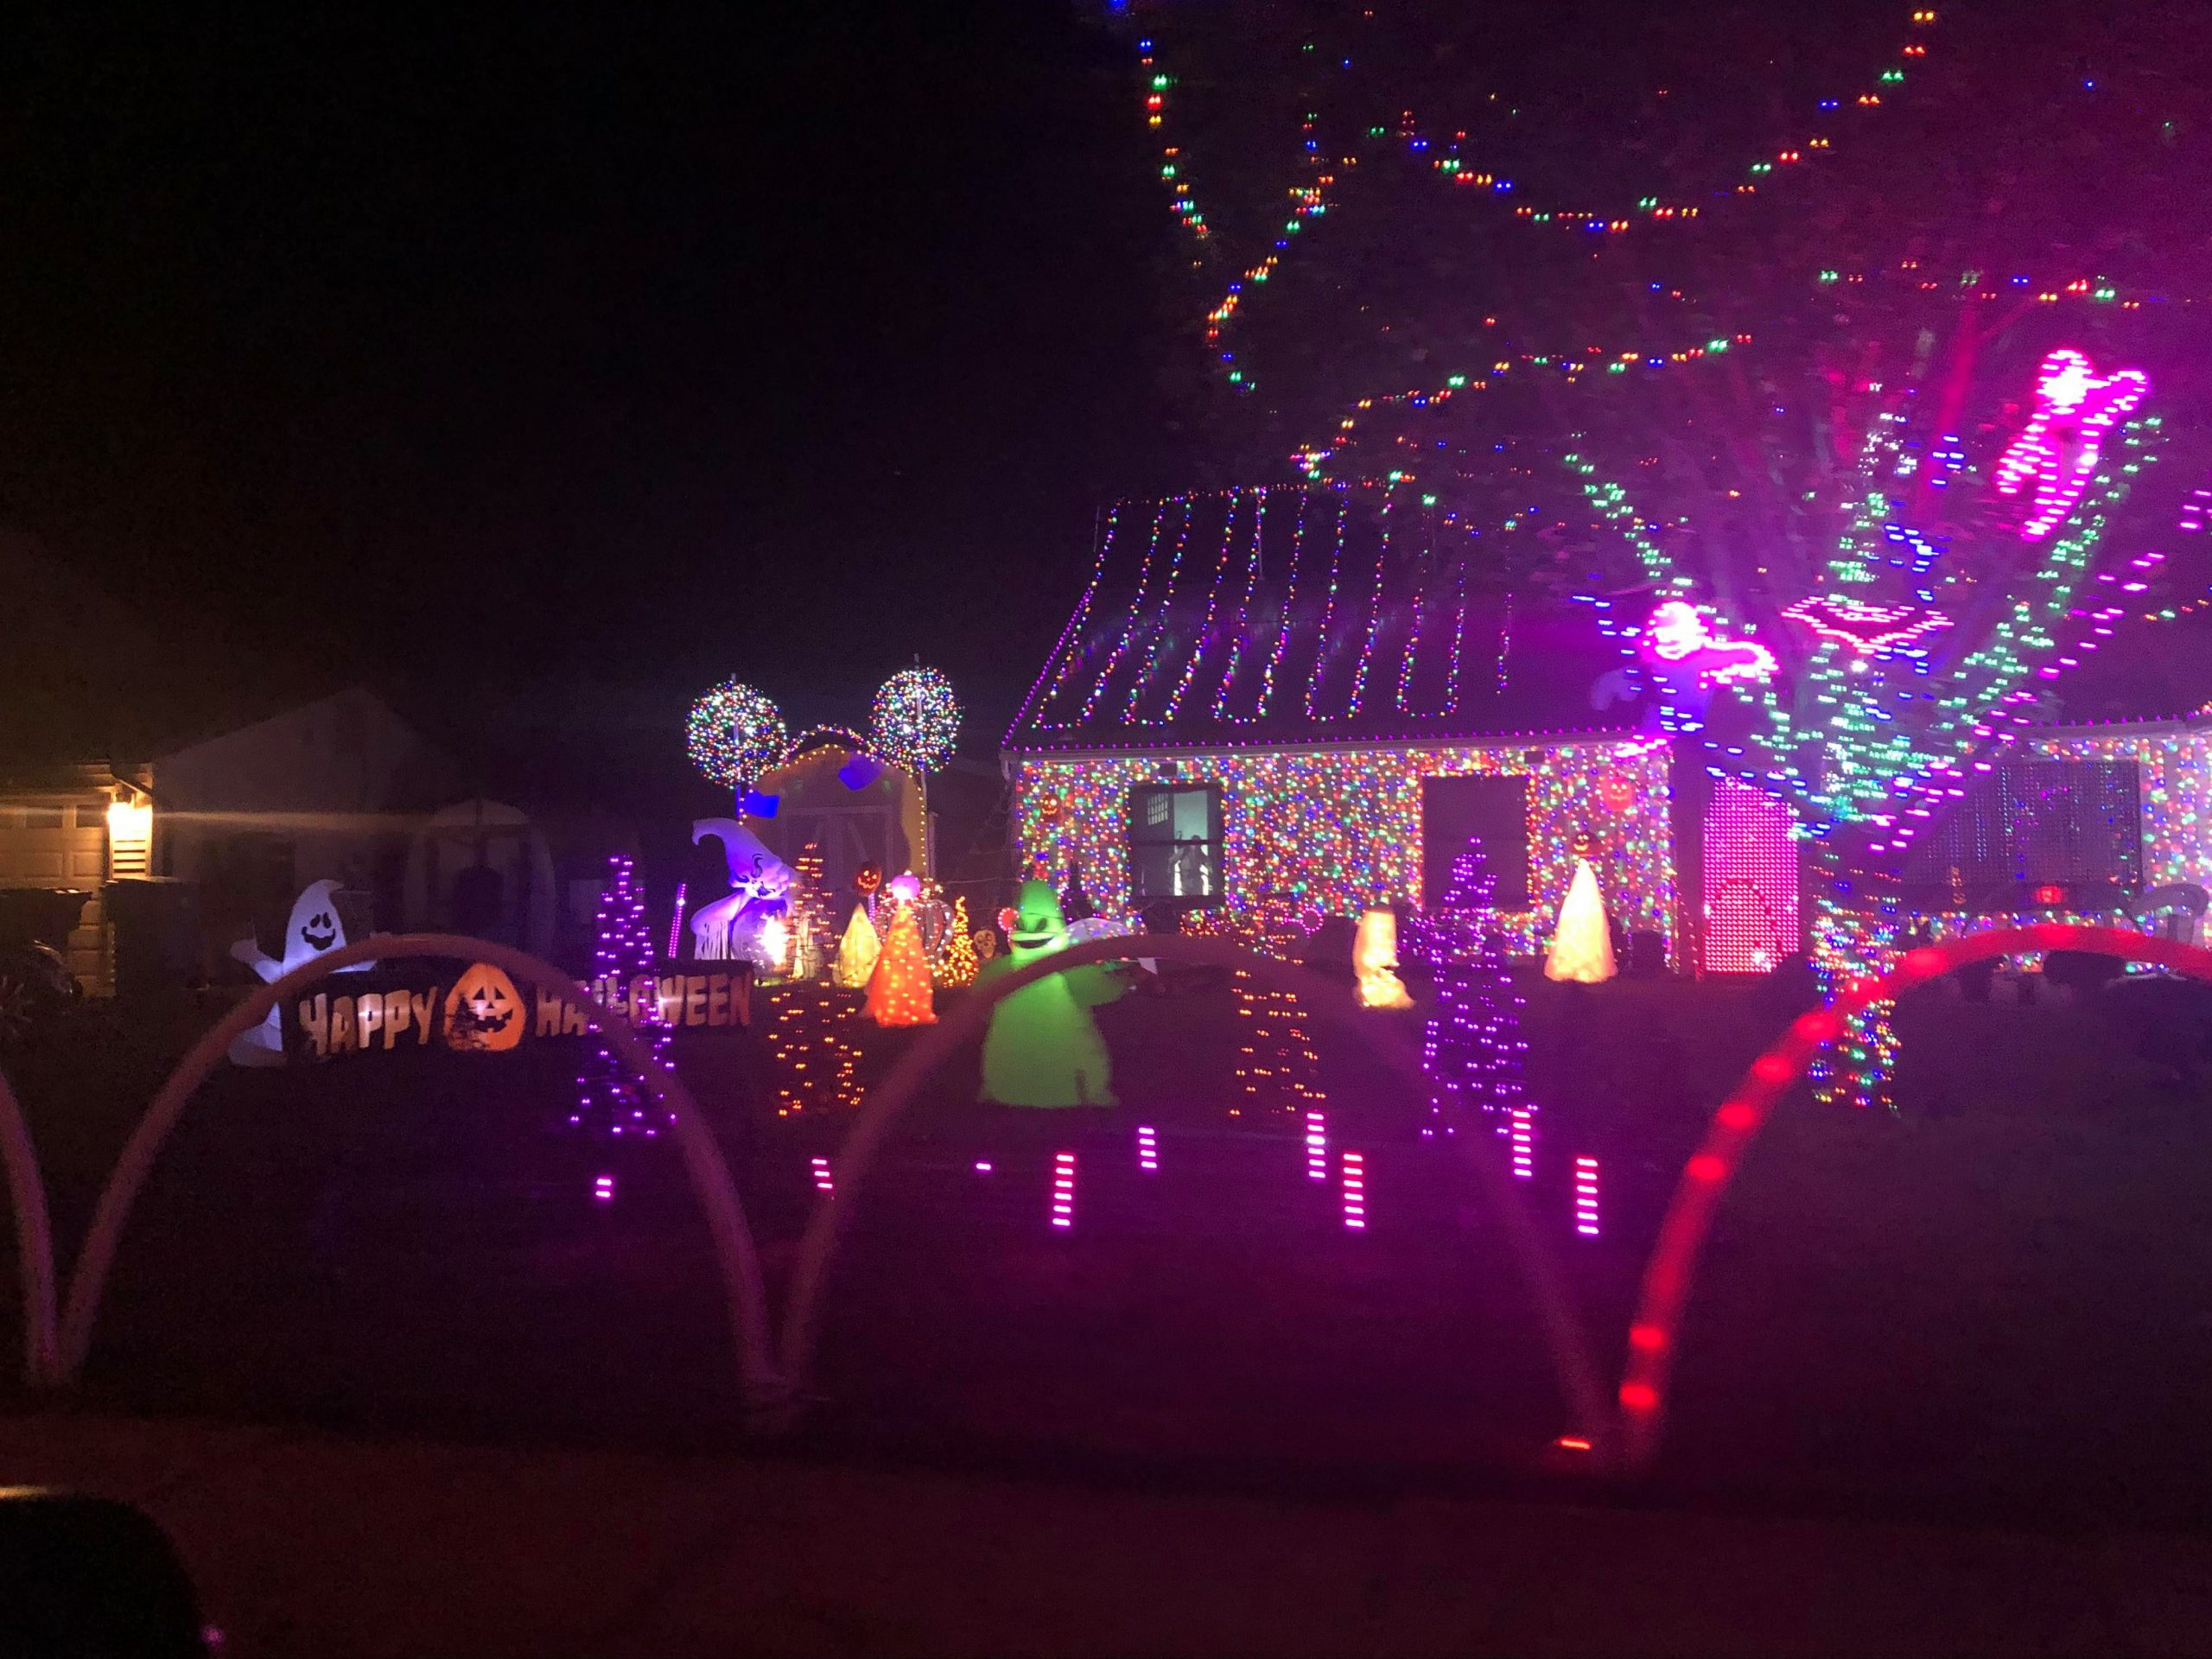 Toms River Home Beloved For Holiday Displays Creates A Halloween Version Toms River Nj Shorebeat